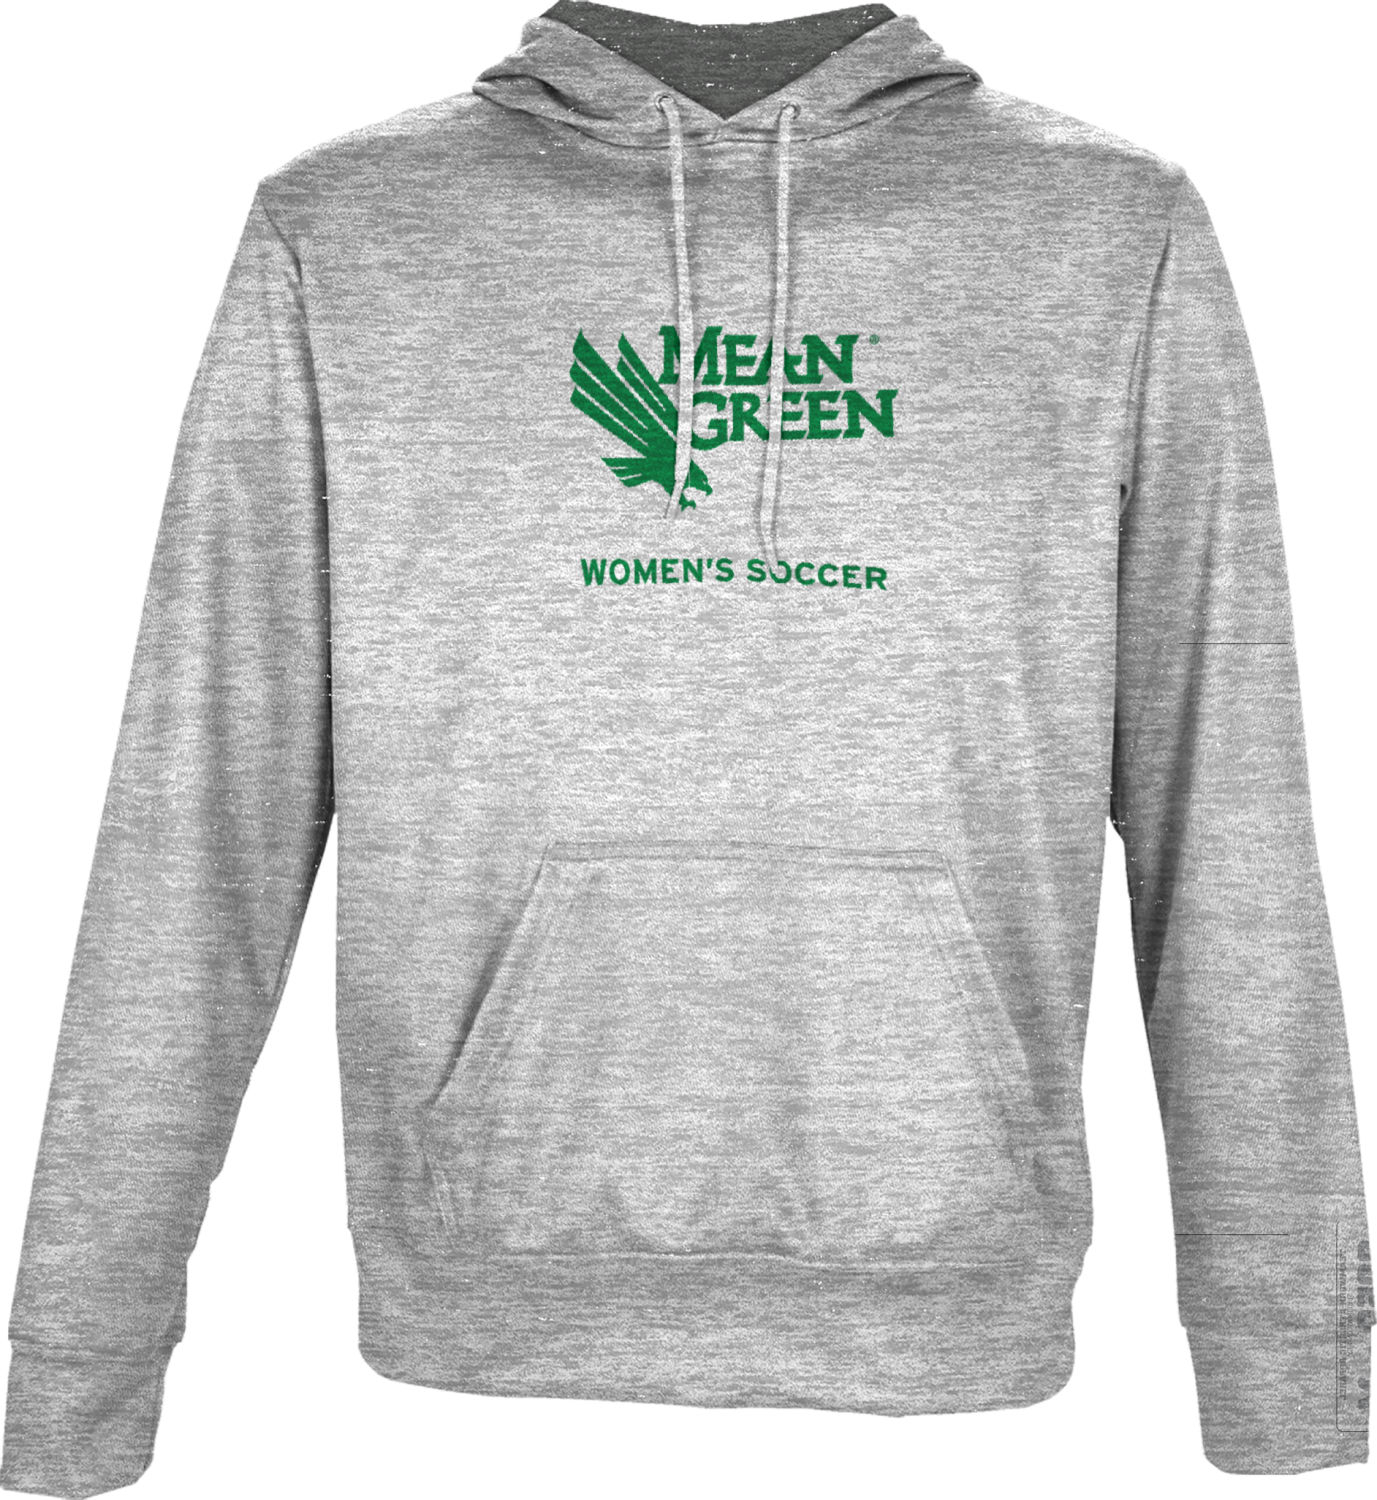 Youth Spectrum Pullover Hoodie -  Women's Soccer